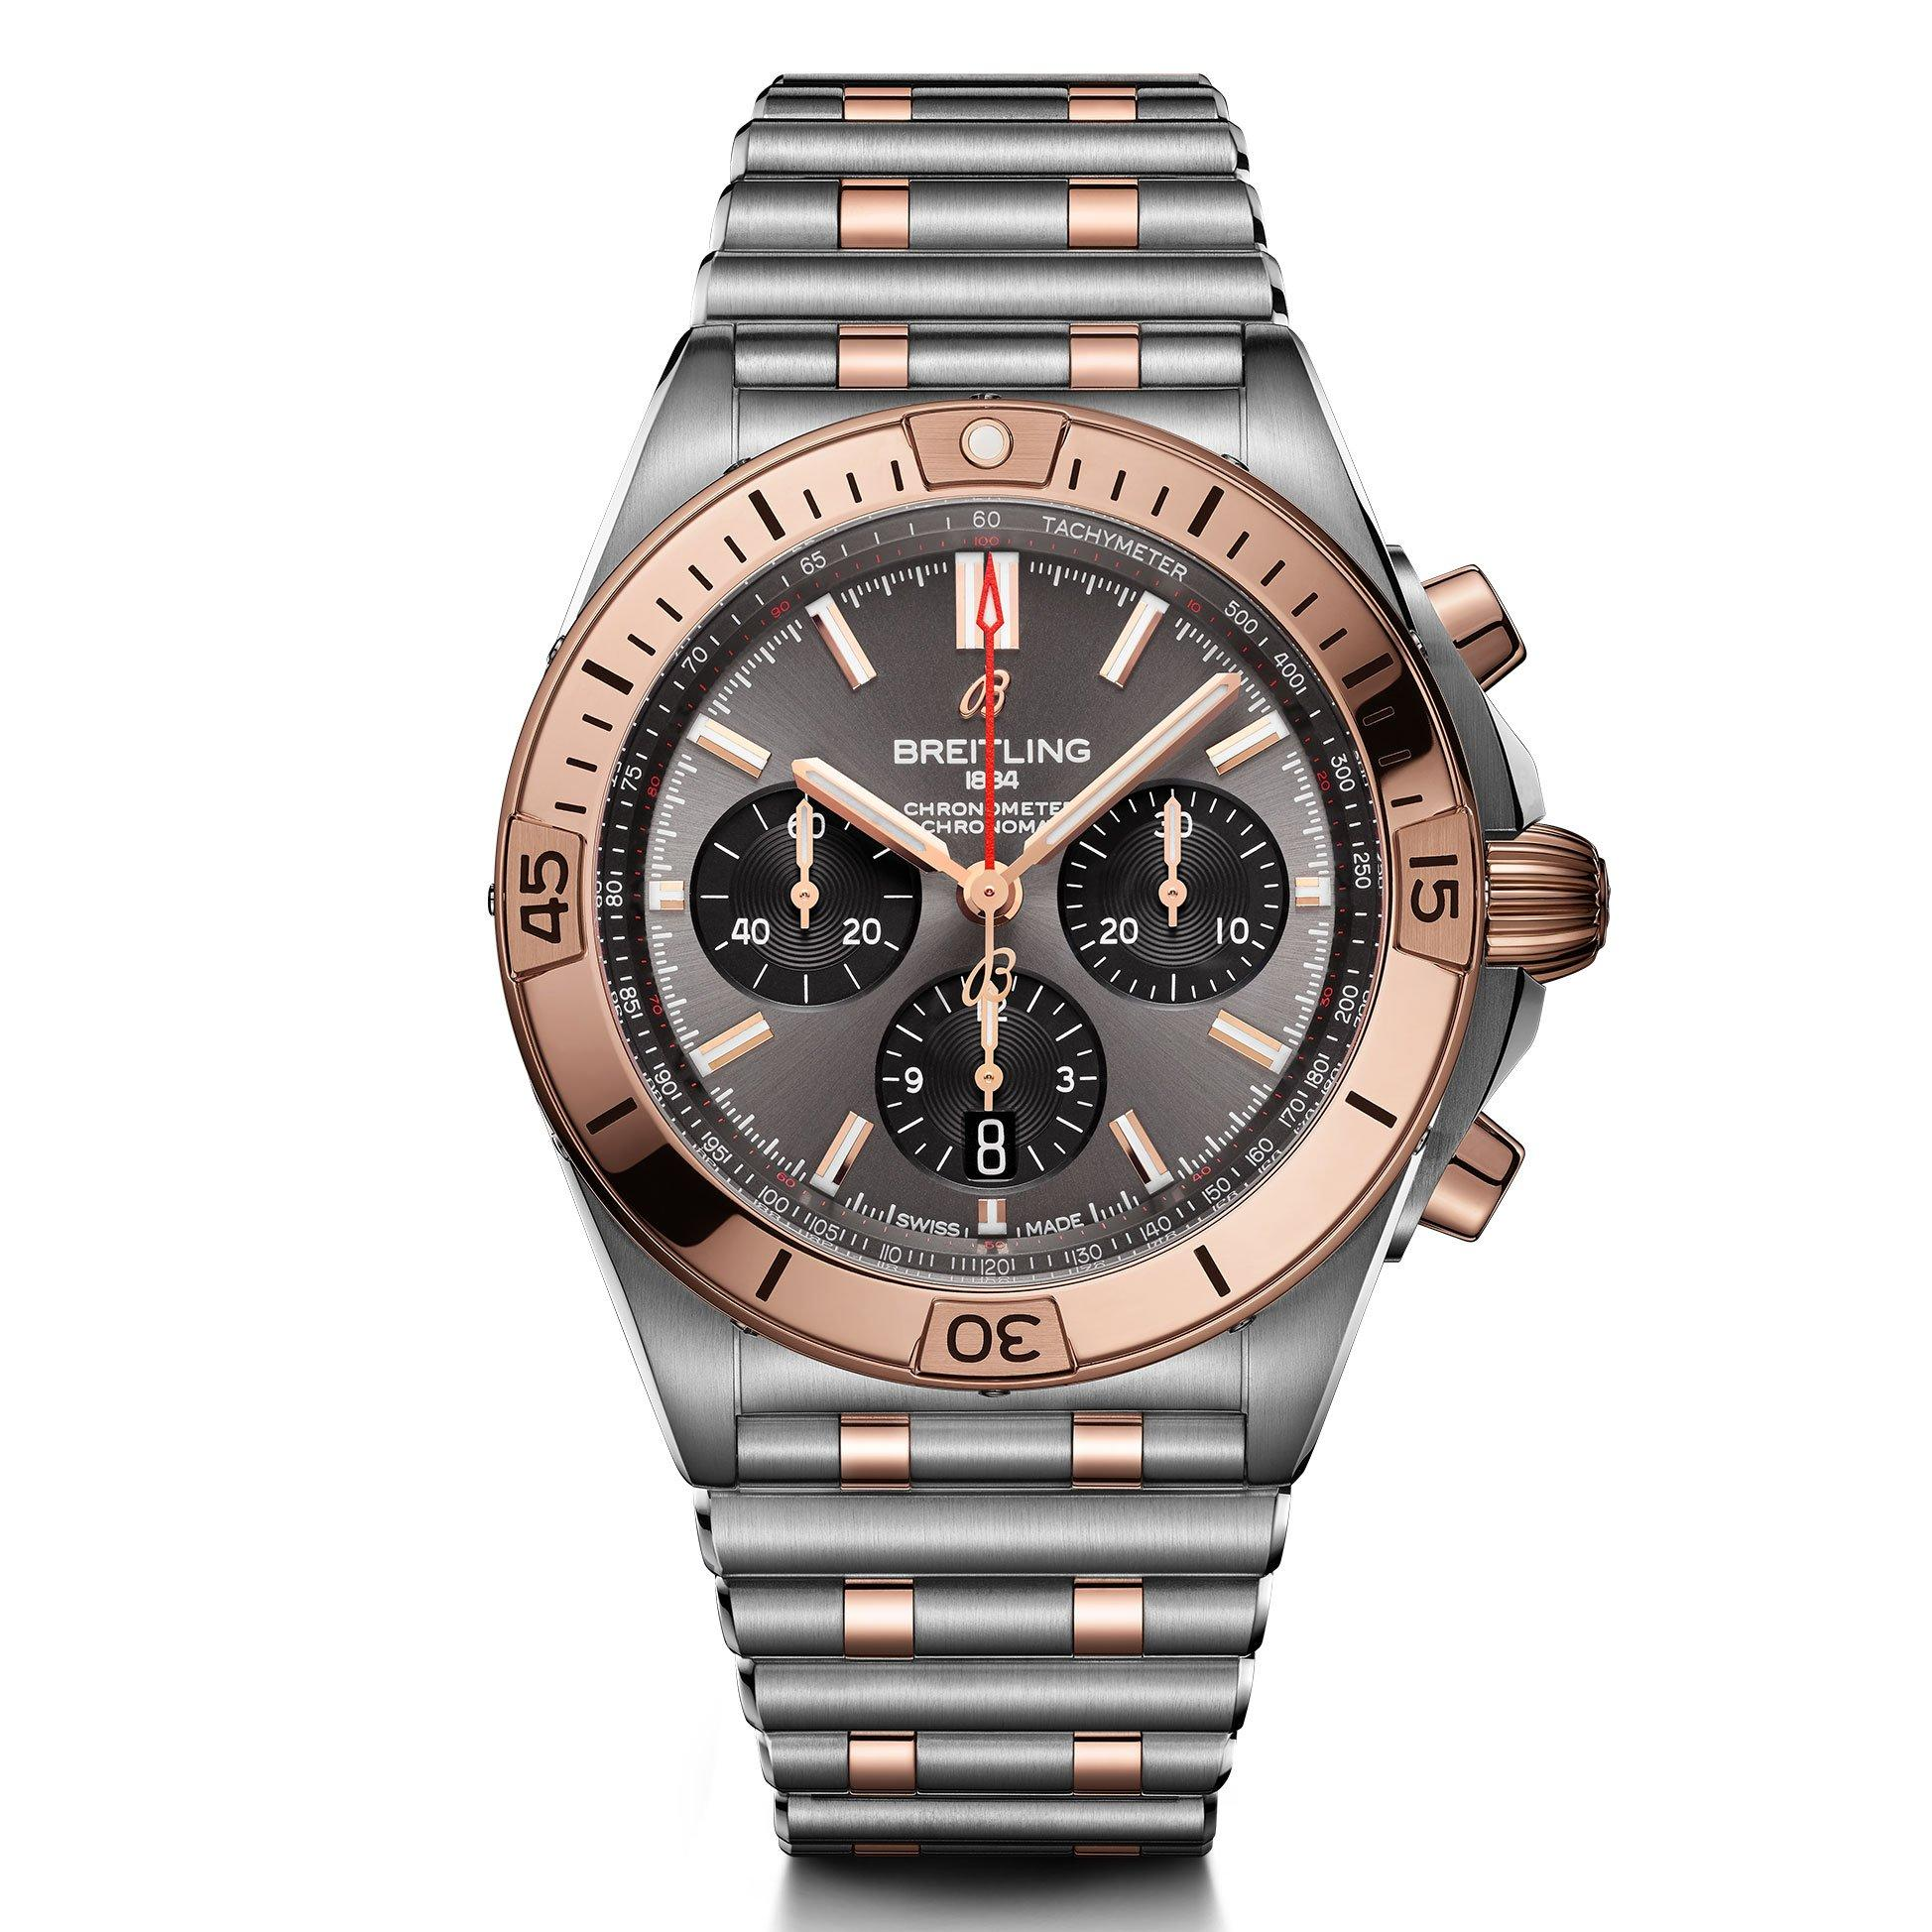 Breitling Chronomat B01 42 Steel and 18ct Red Gold Chronograph Men's Watch